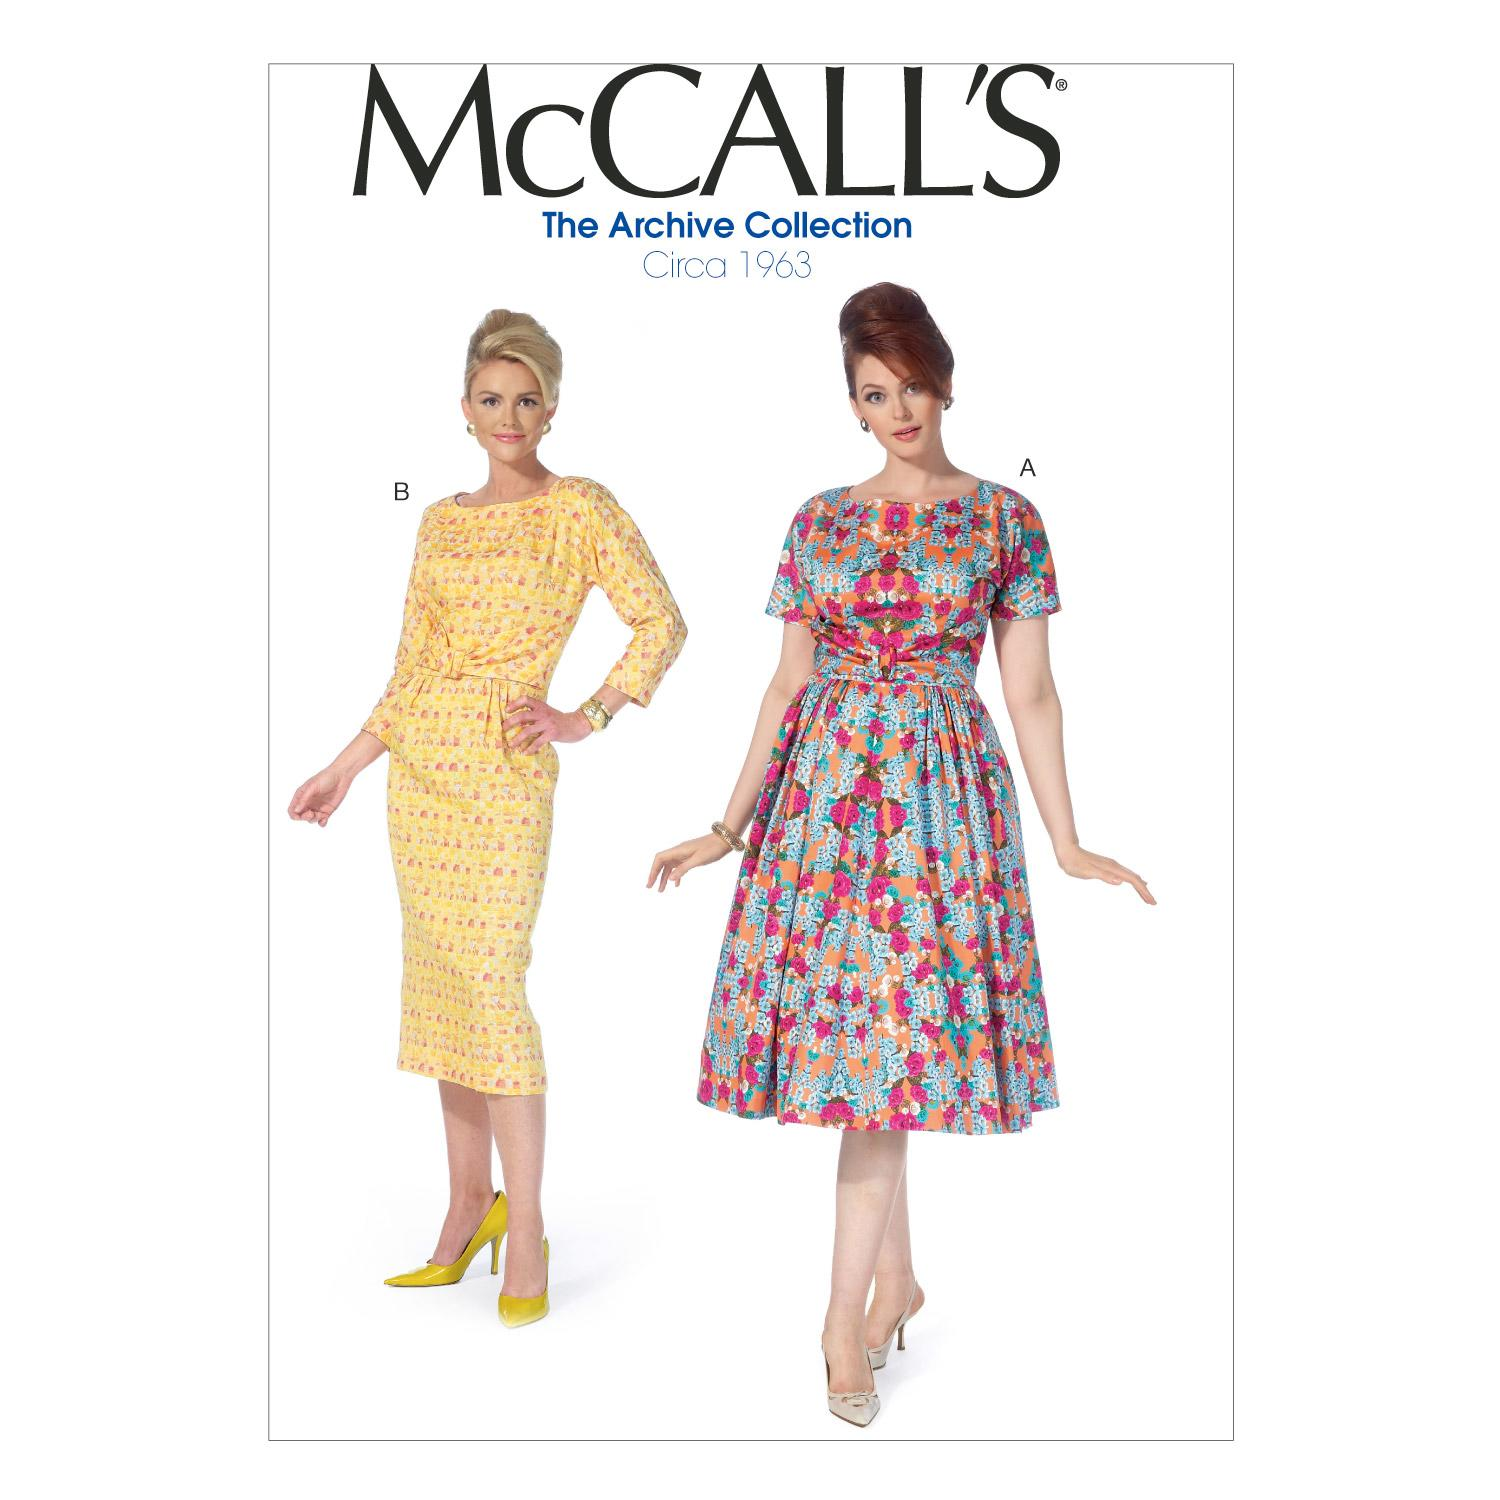 McCalls M7086 Dresses, Plus Size, The Archive Collection